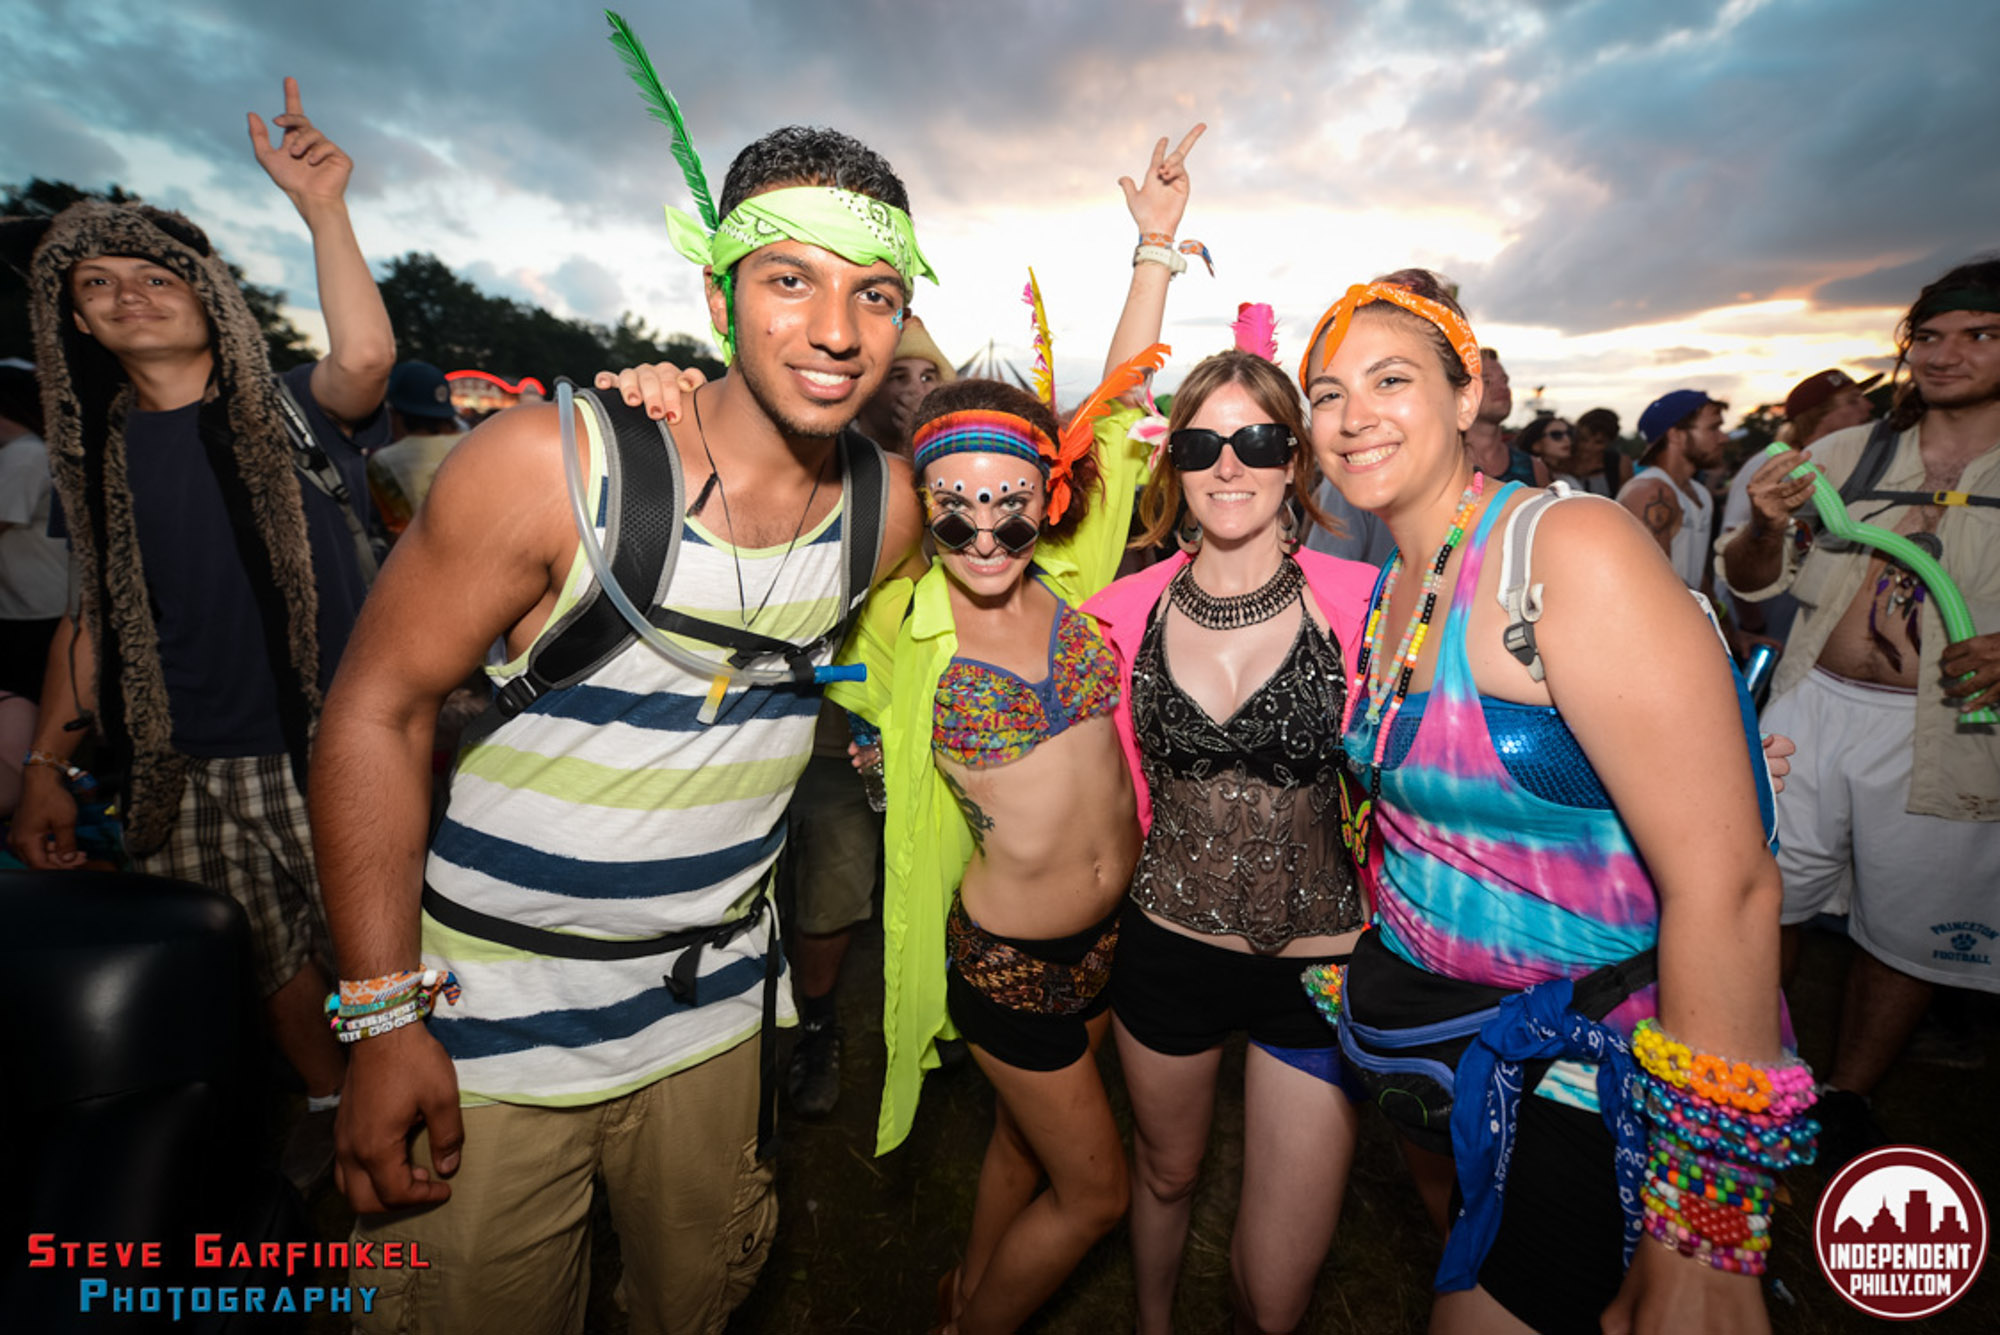 Camp_Bisco-39